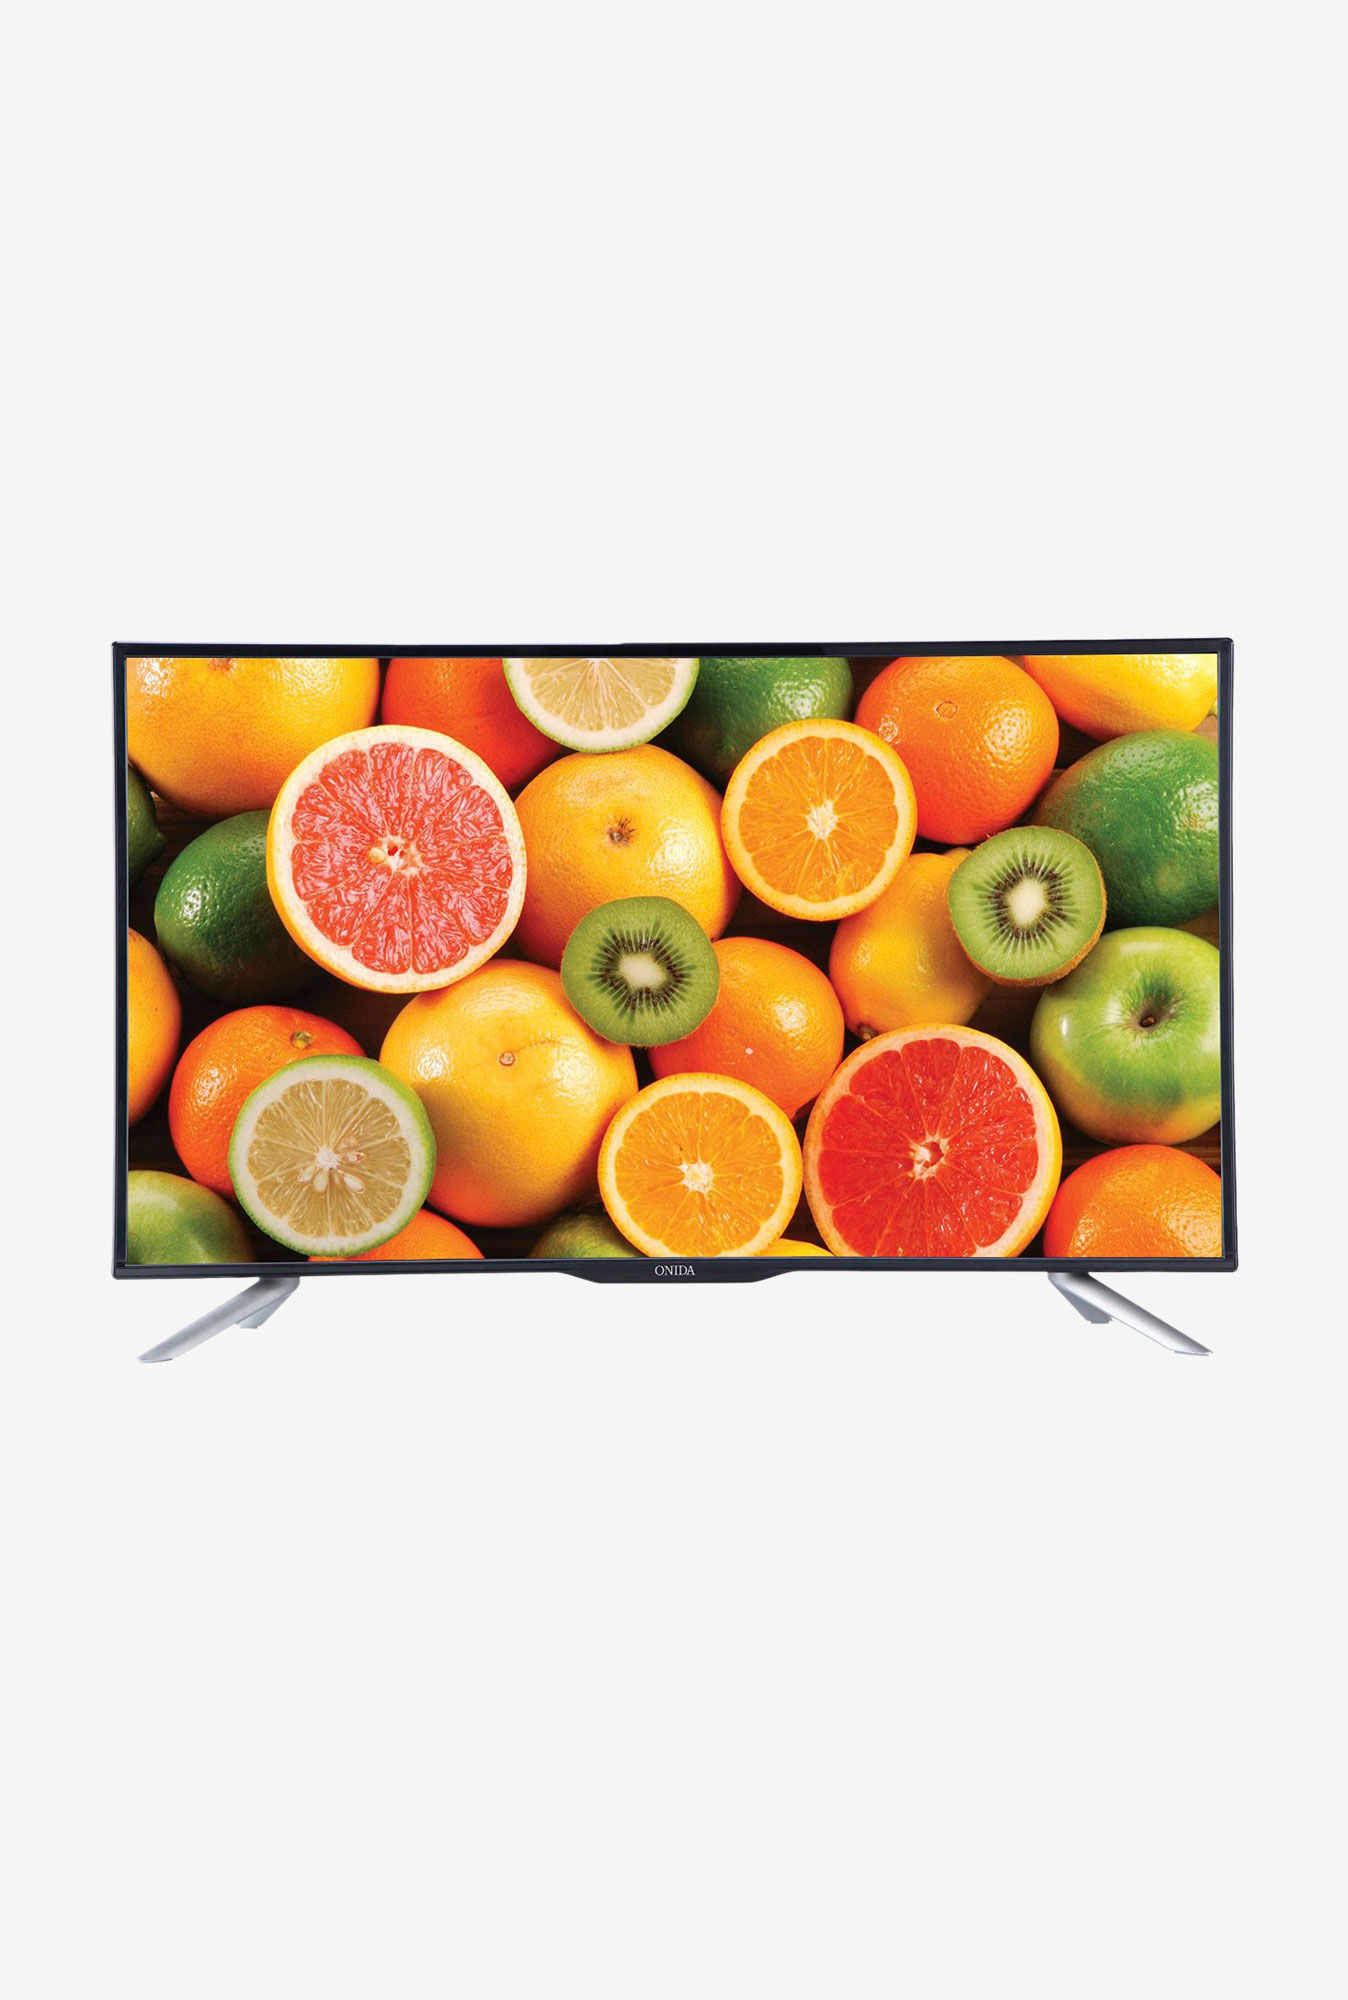 Onida LEO40FBV 40 Inch Full HD LED TV